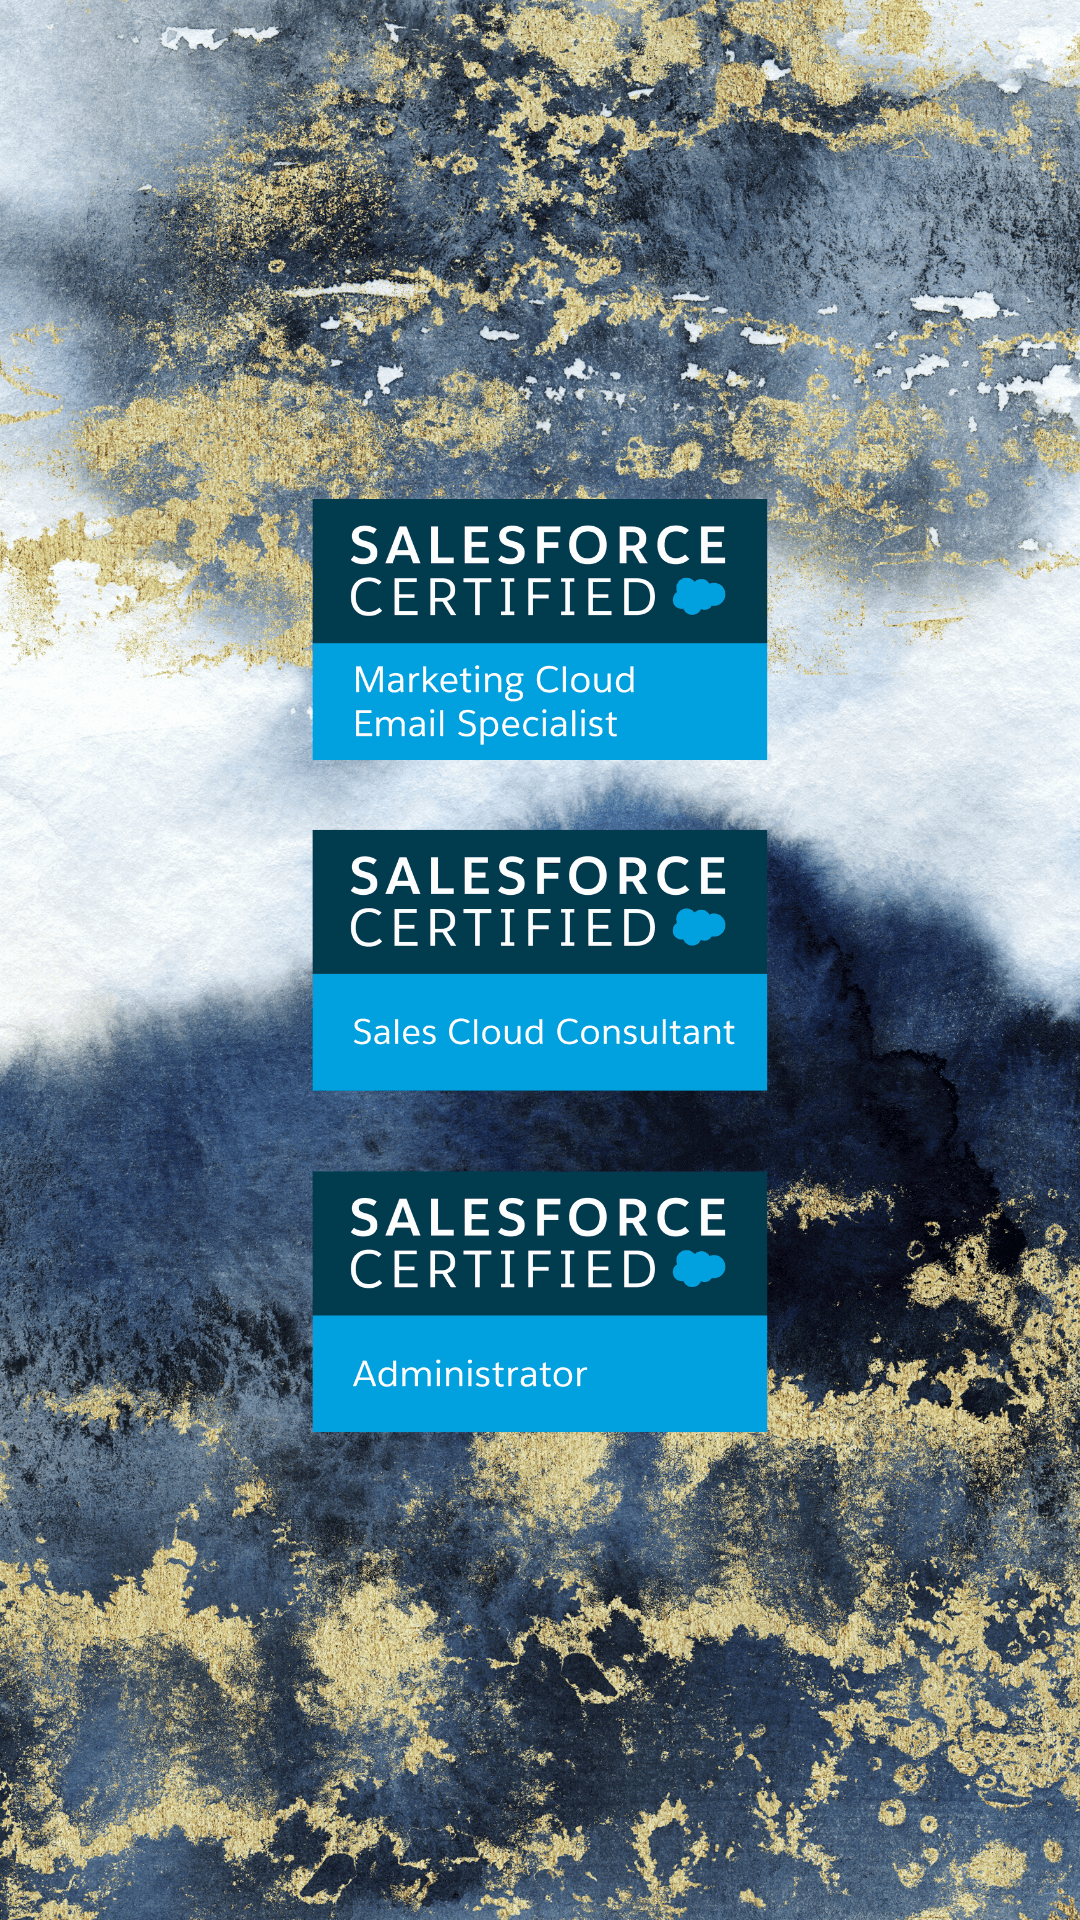 salesforce marketing cloud sales cloud email specialist certified